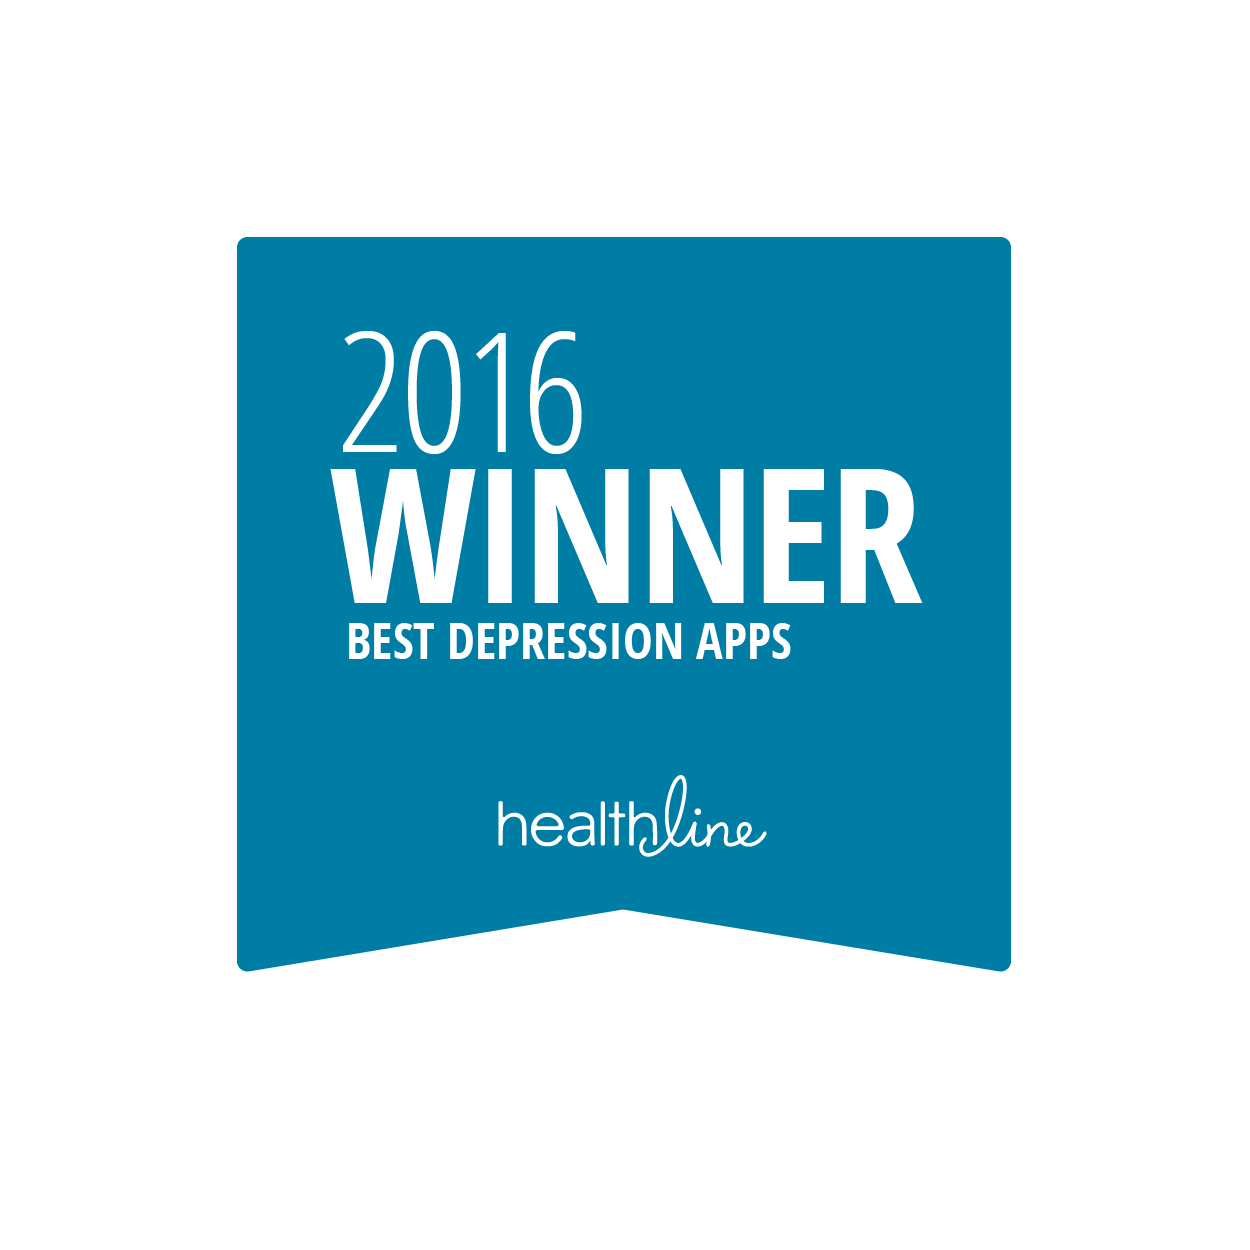 The Best Depression Apps of 2016